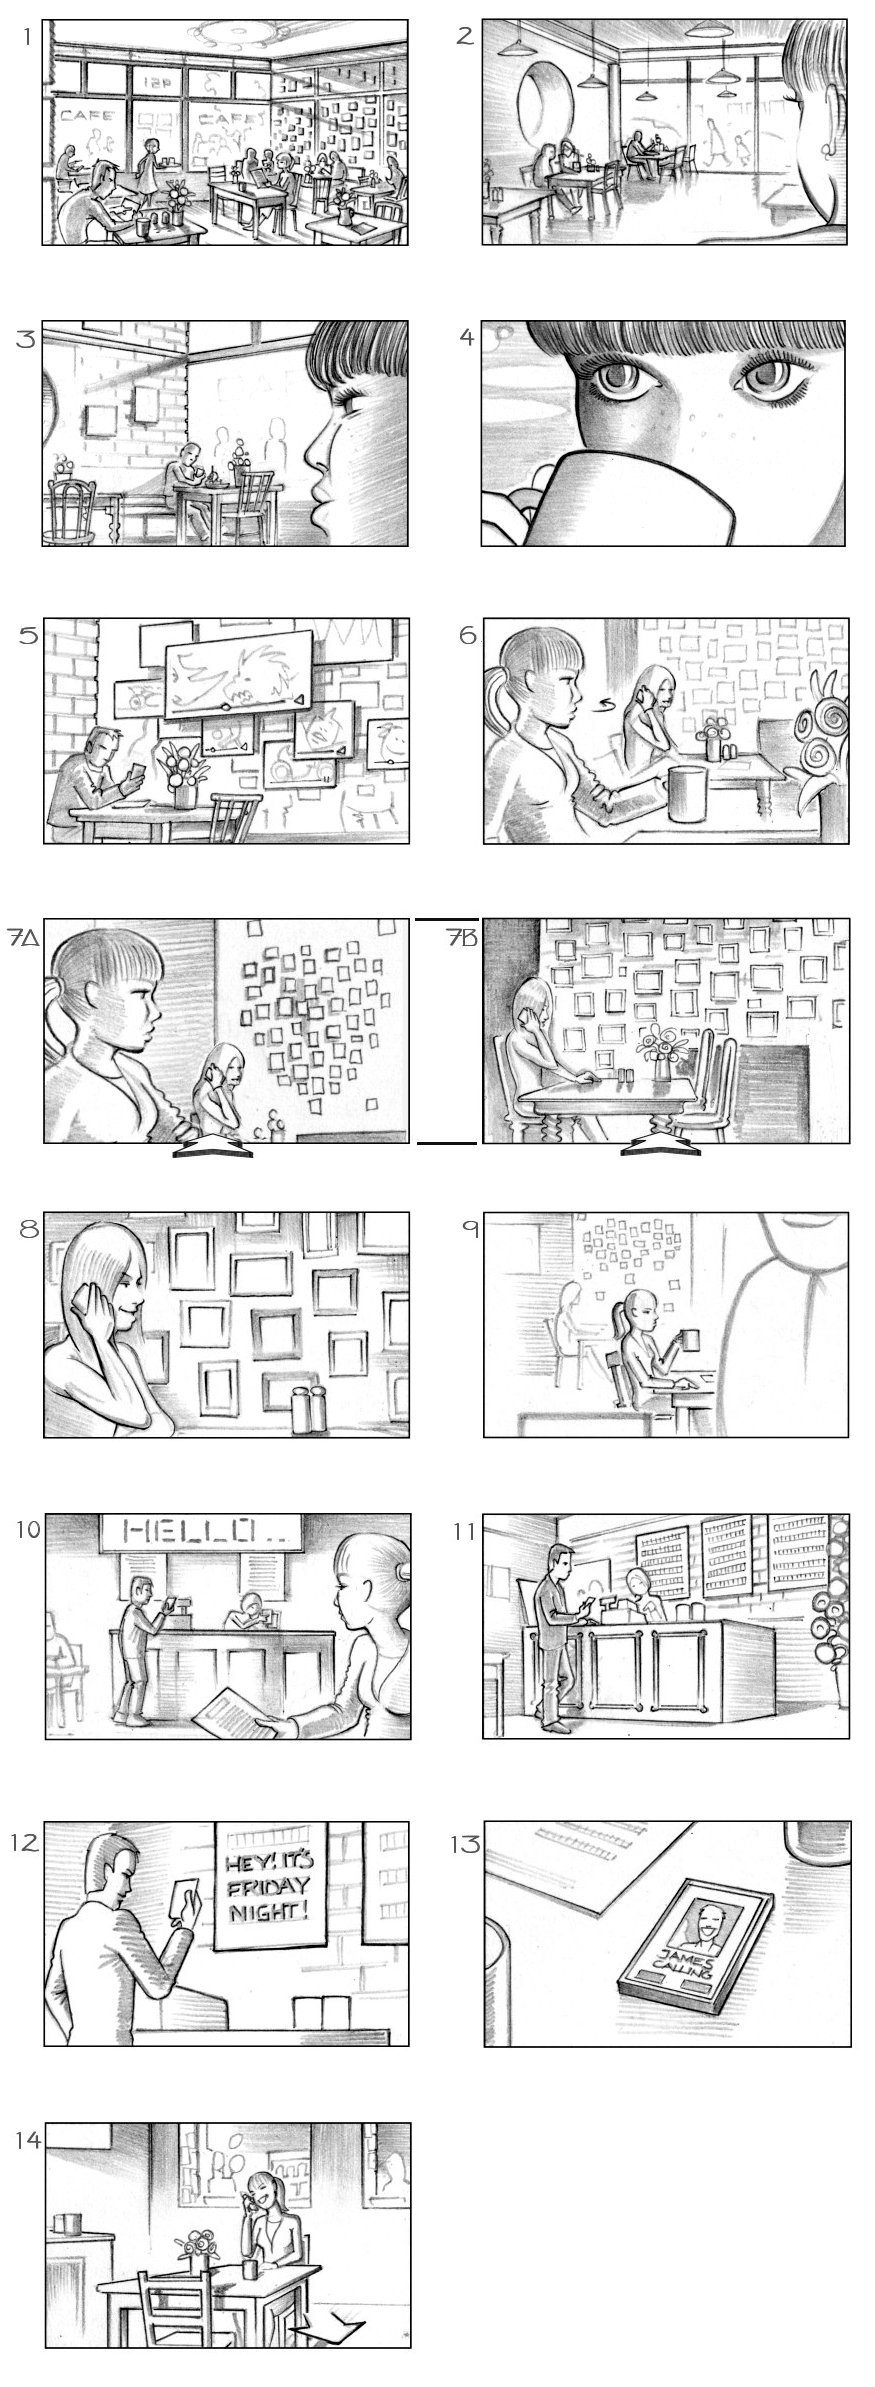 VODAFONE 'CAFE' STORYBOARD BY ANDY SPARROW